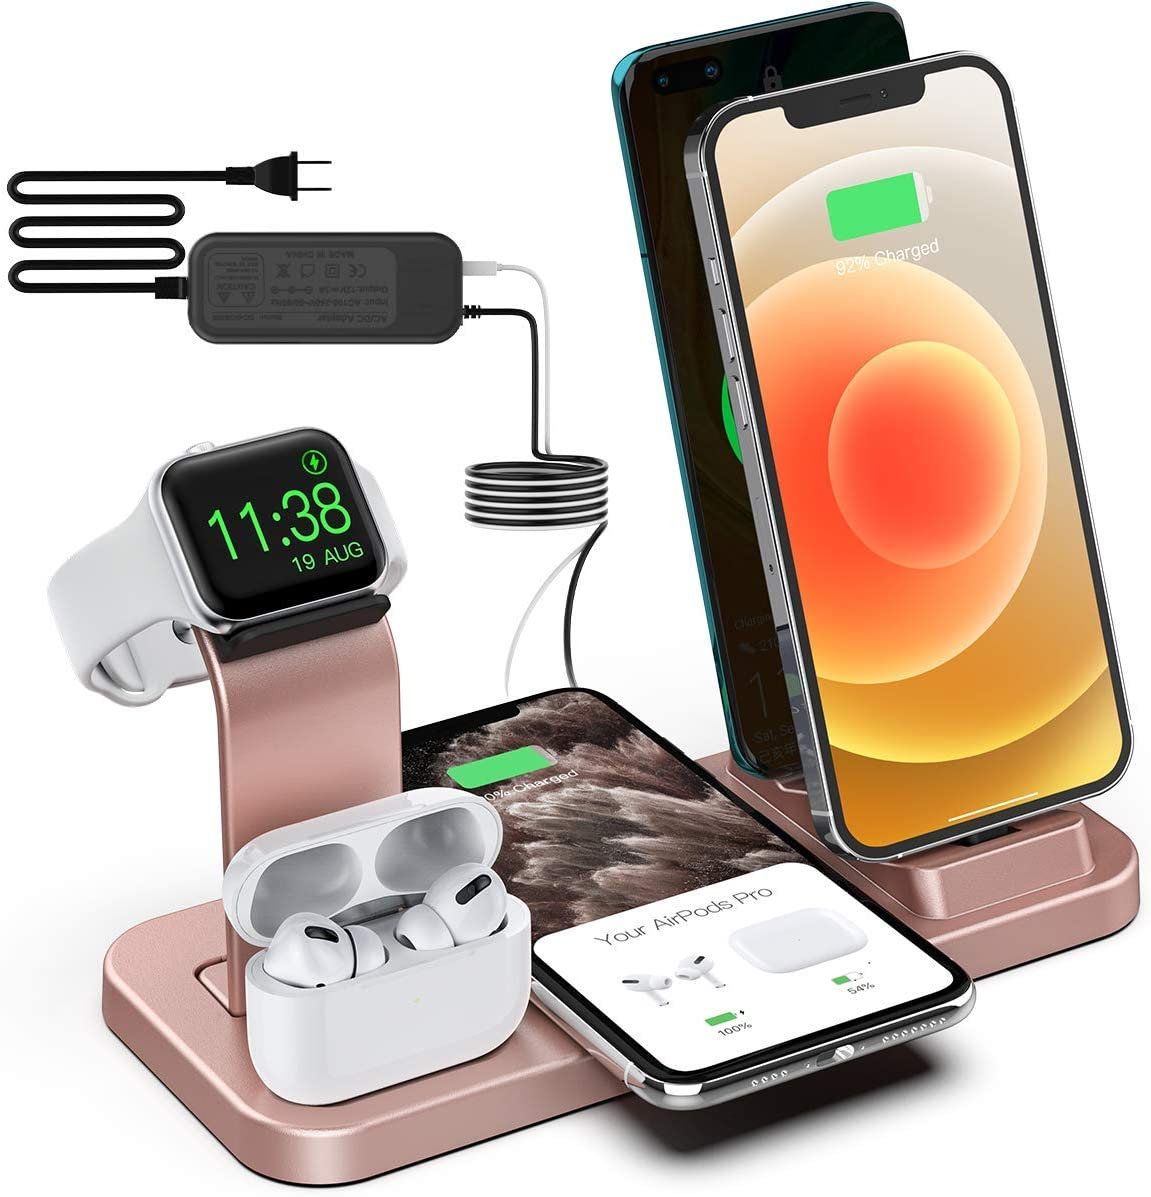 BeaSaf Wireless Charger,5 in 1 Wireless Charging Station for iPhone Samsung, USB C Dock Station for Android Phones, Charging Stand for Apple Watch Series 6 /SE/5/4/3/2/1 AirPods Pro 2 1 Rose Gold